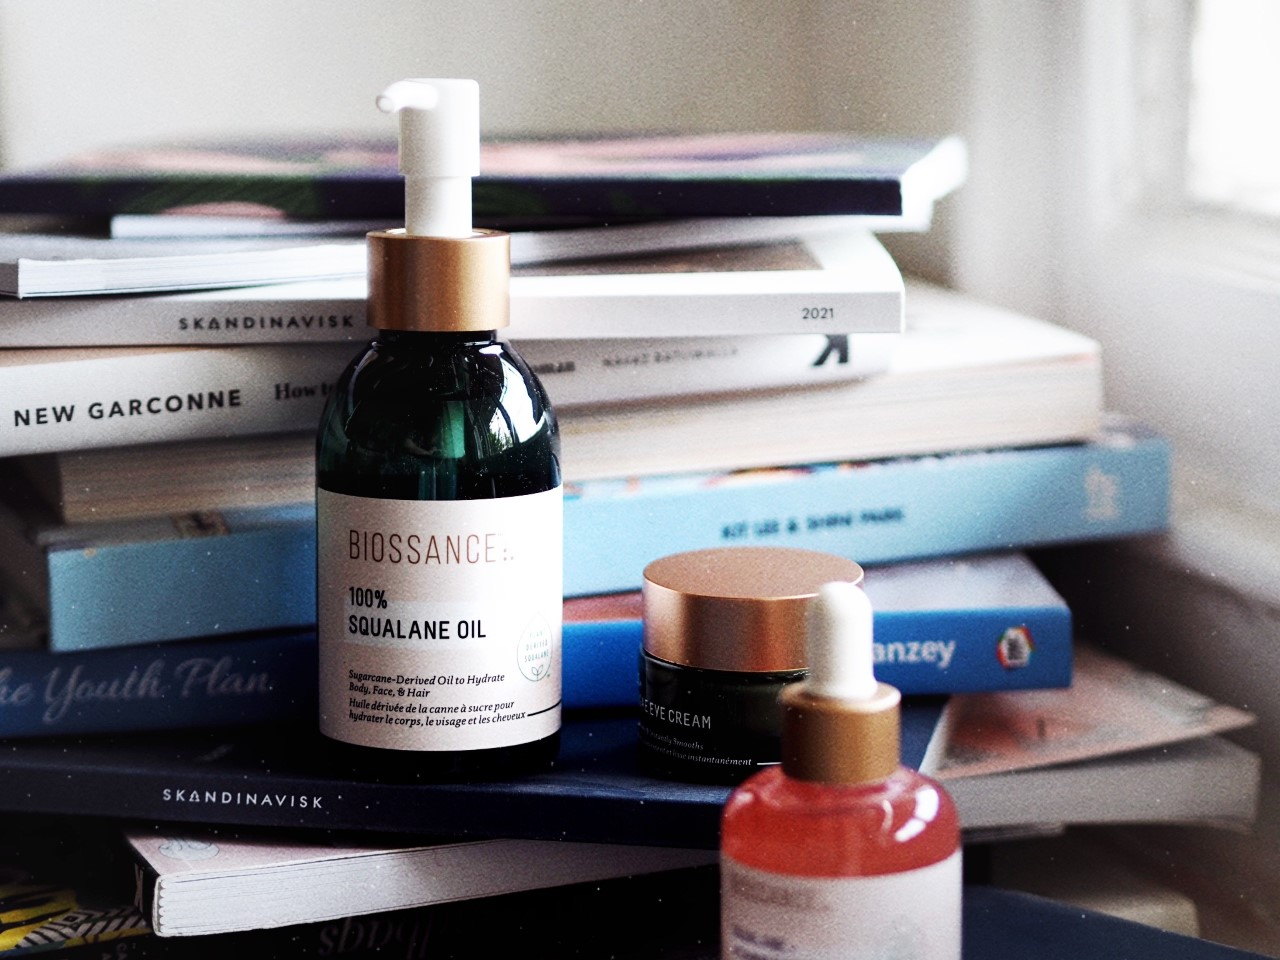 How To Use Biossance 100% Squalane Oil